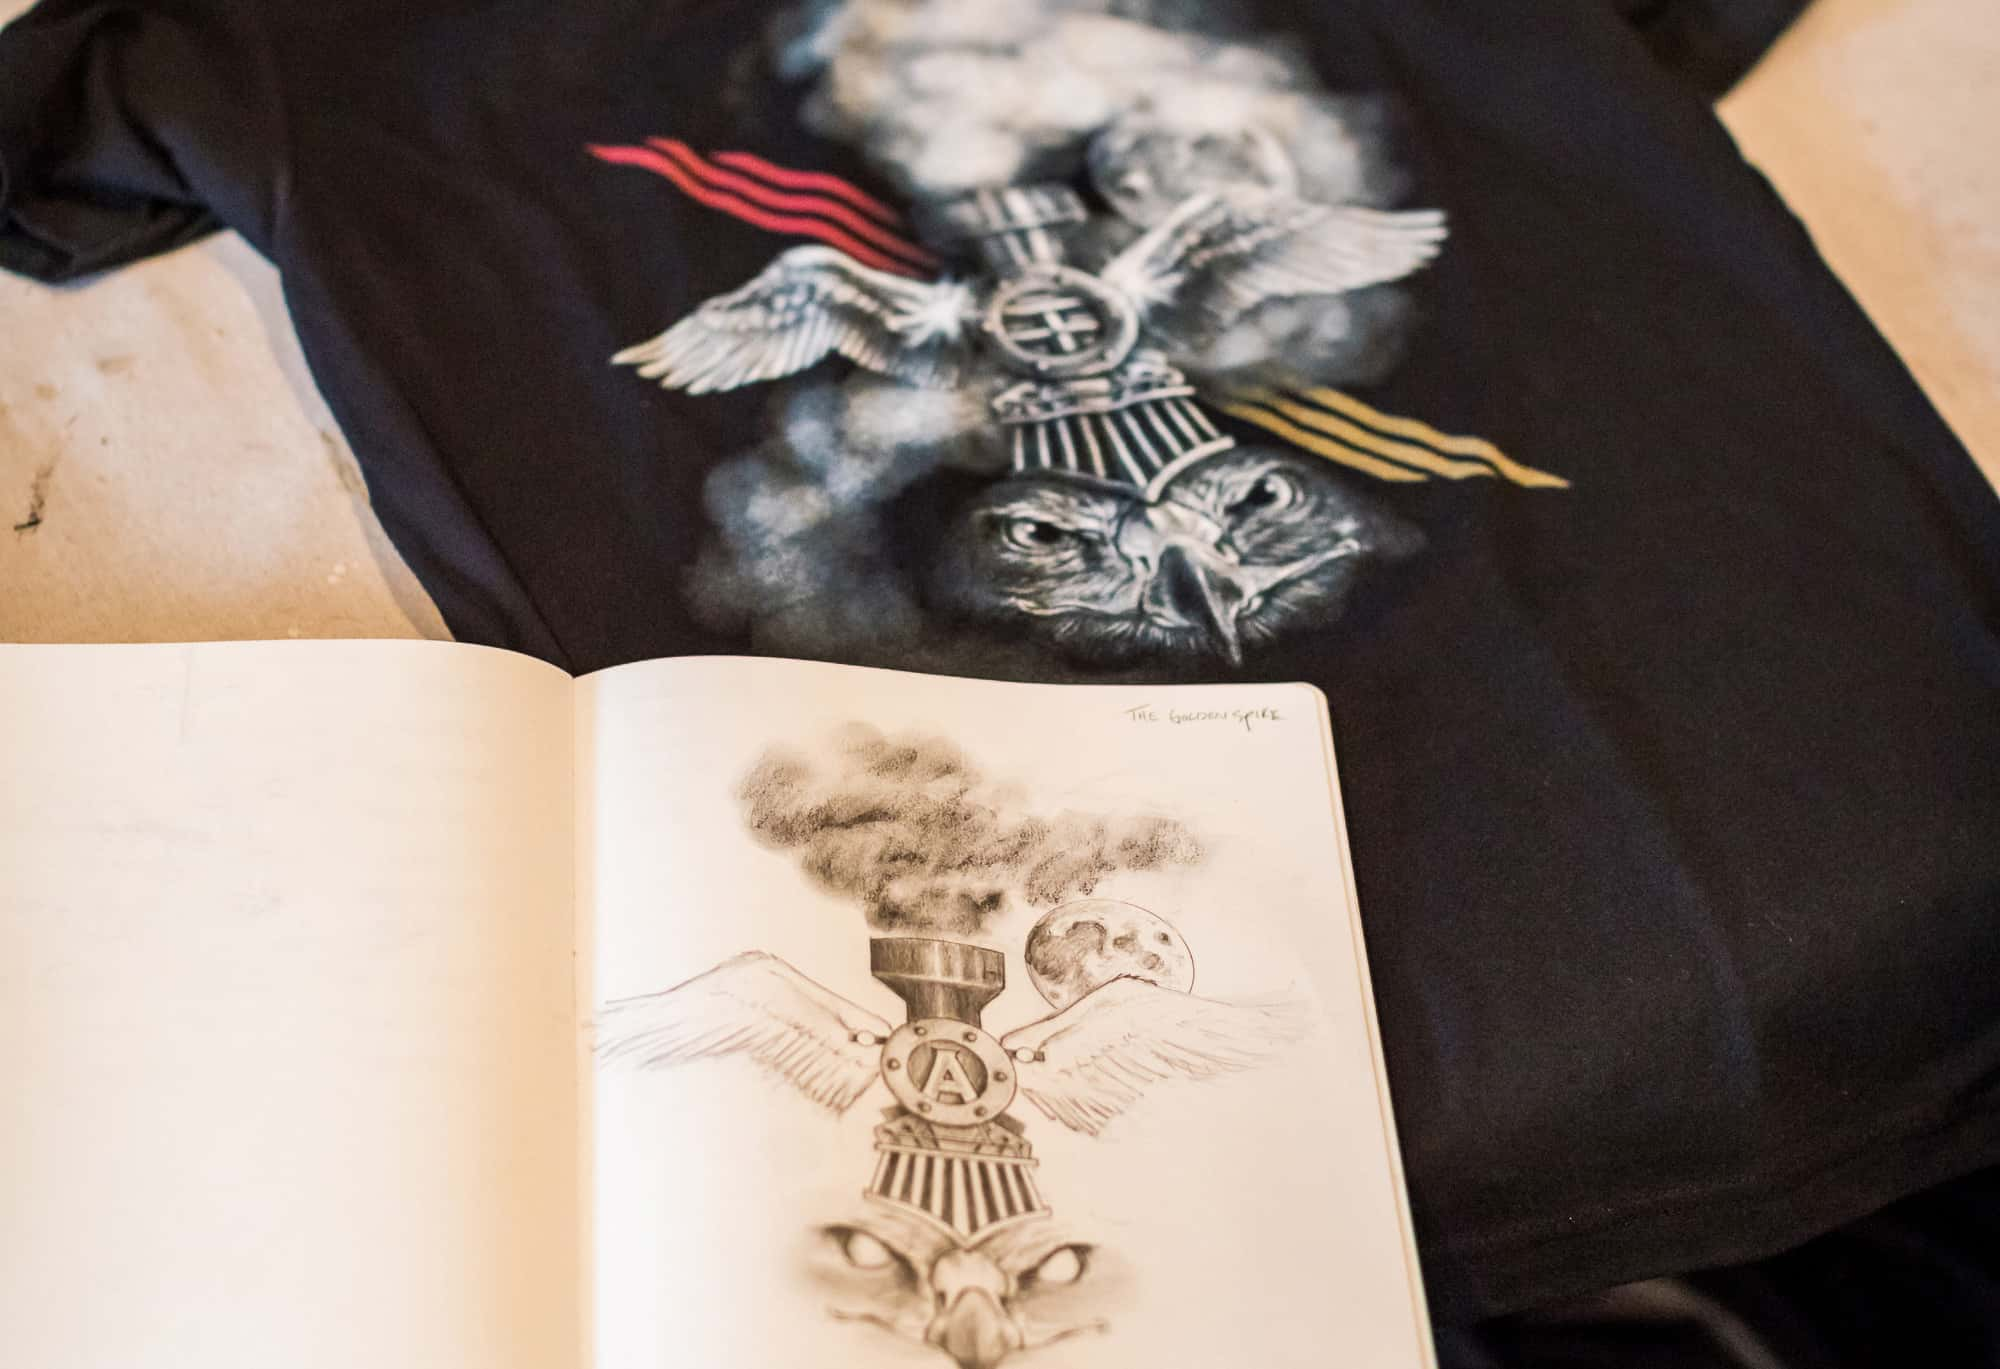 A detail image of Thomas Turner's notebook and printed t-shirt.